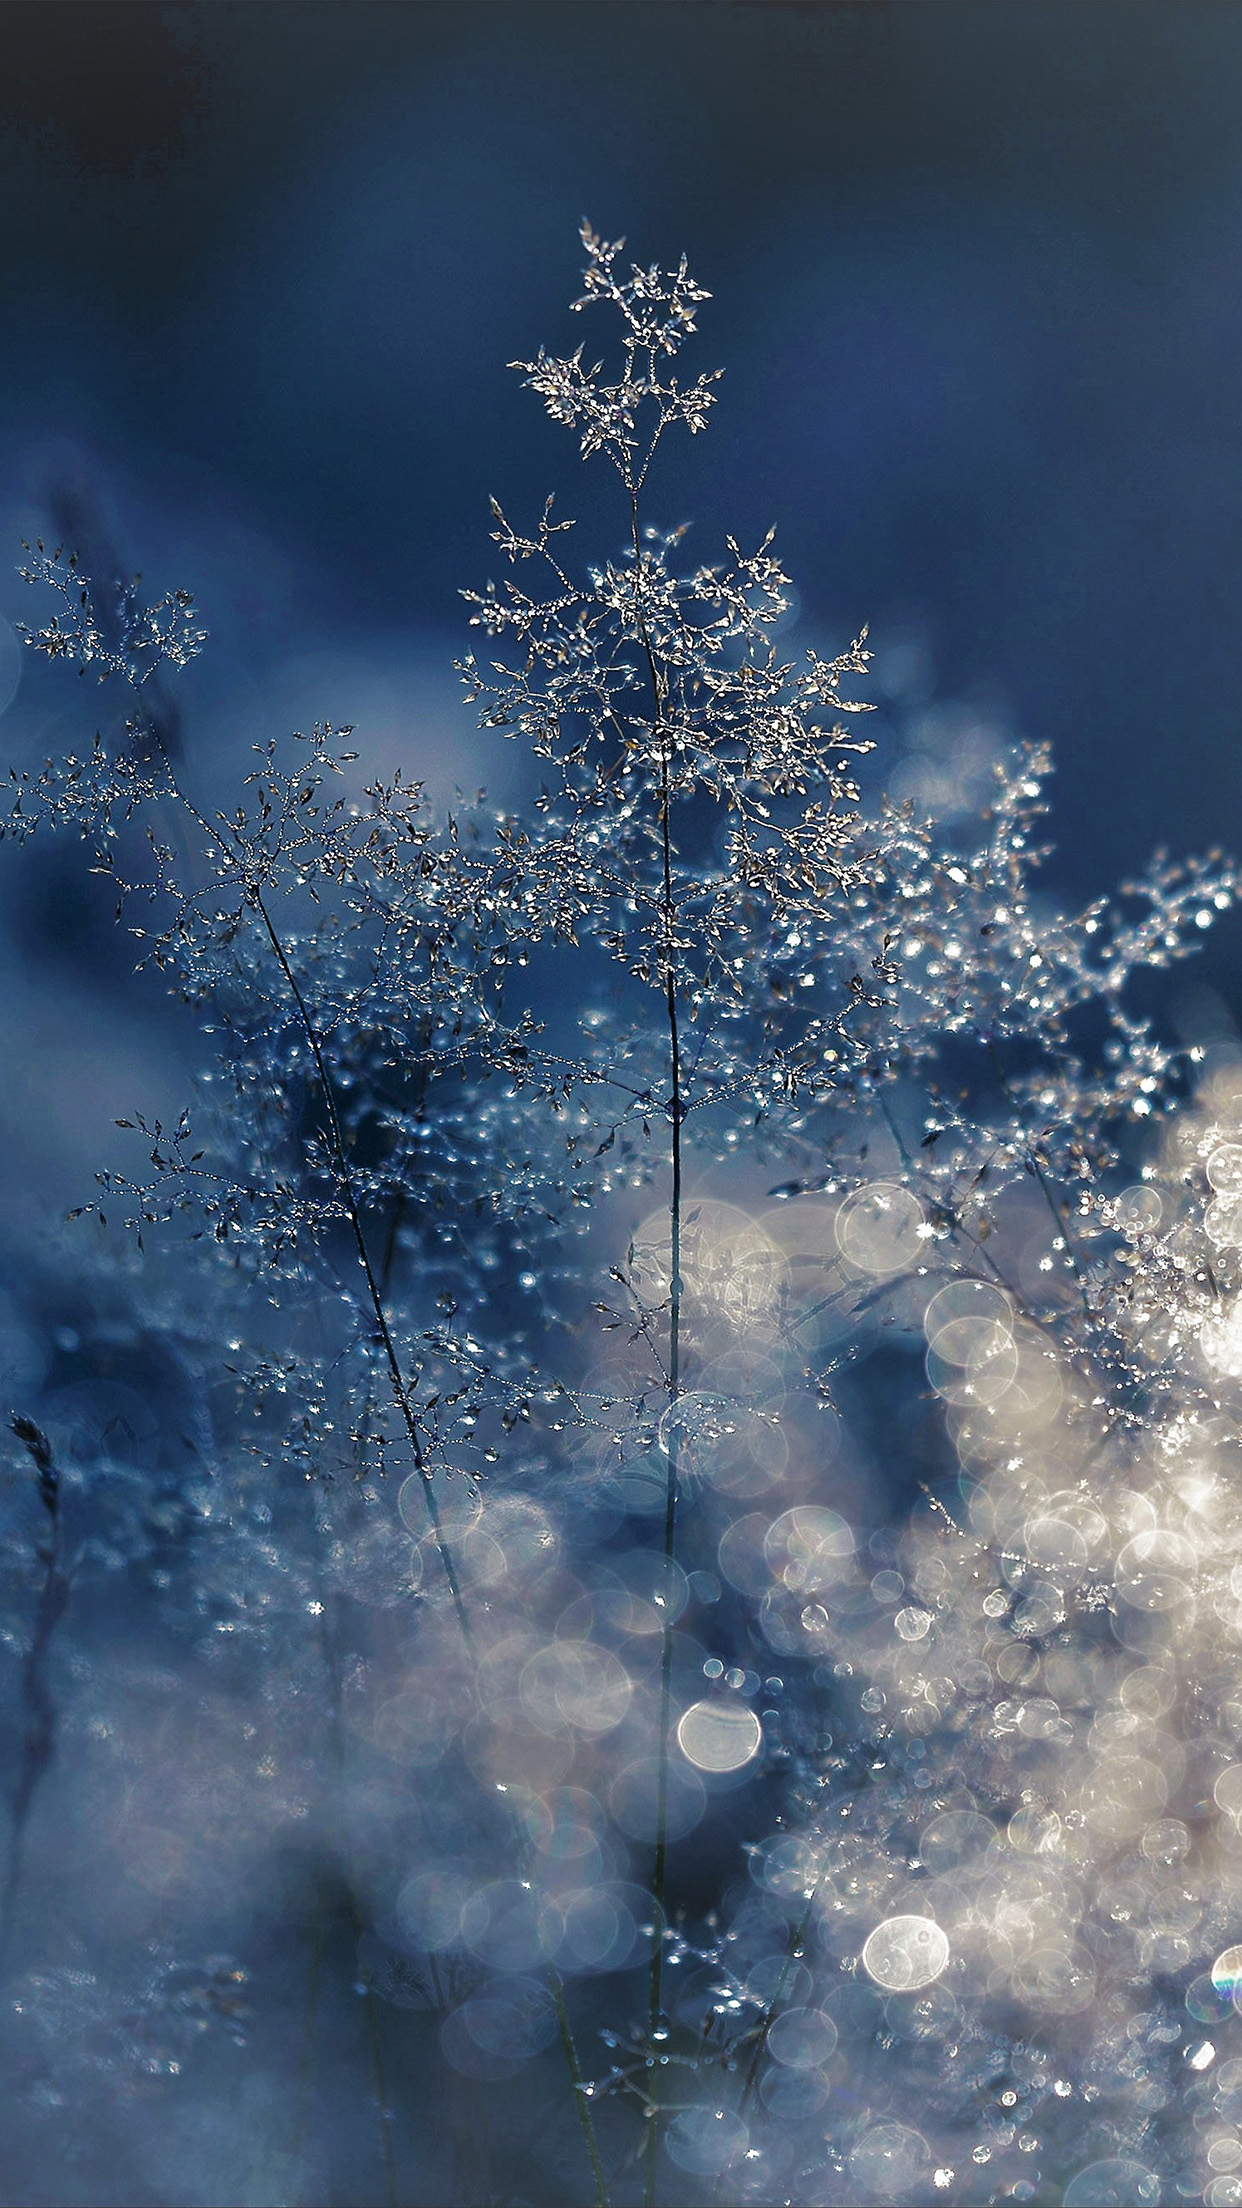 Samsung Car Wallpaper Nw53 Snow Bokeh Light Beautiful Nature Blue Wallpaper